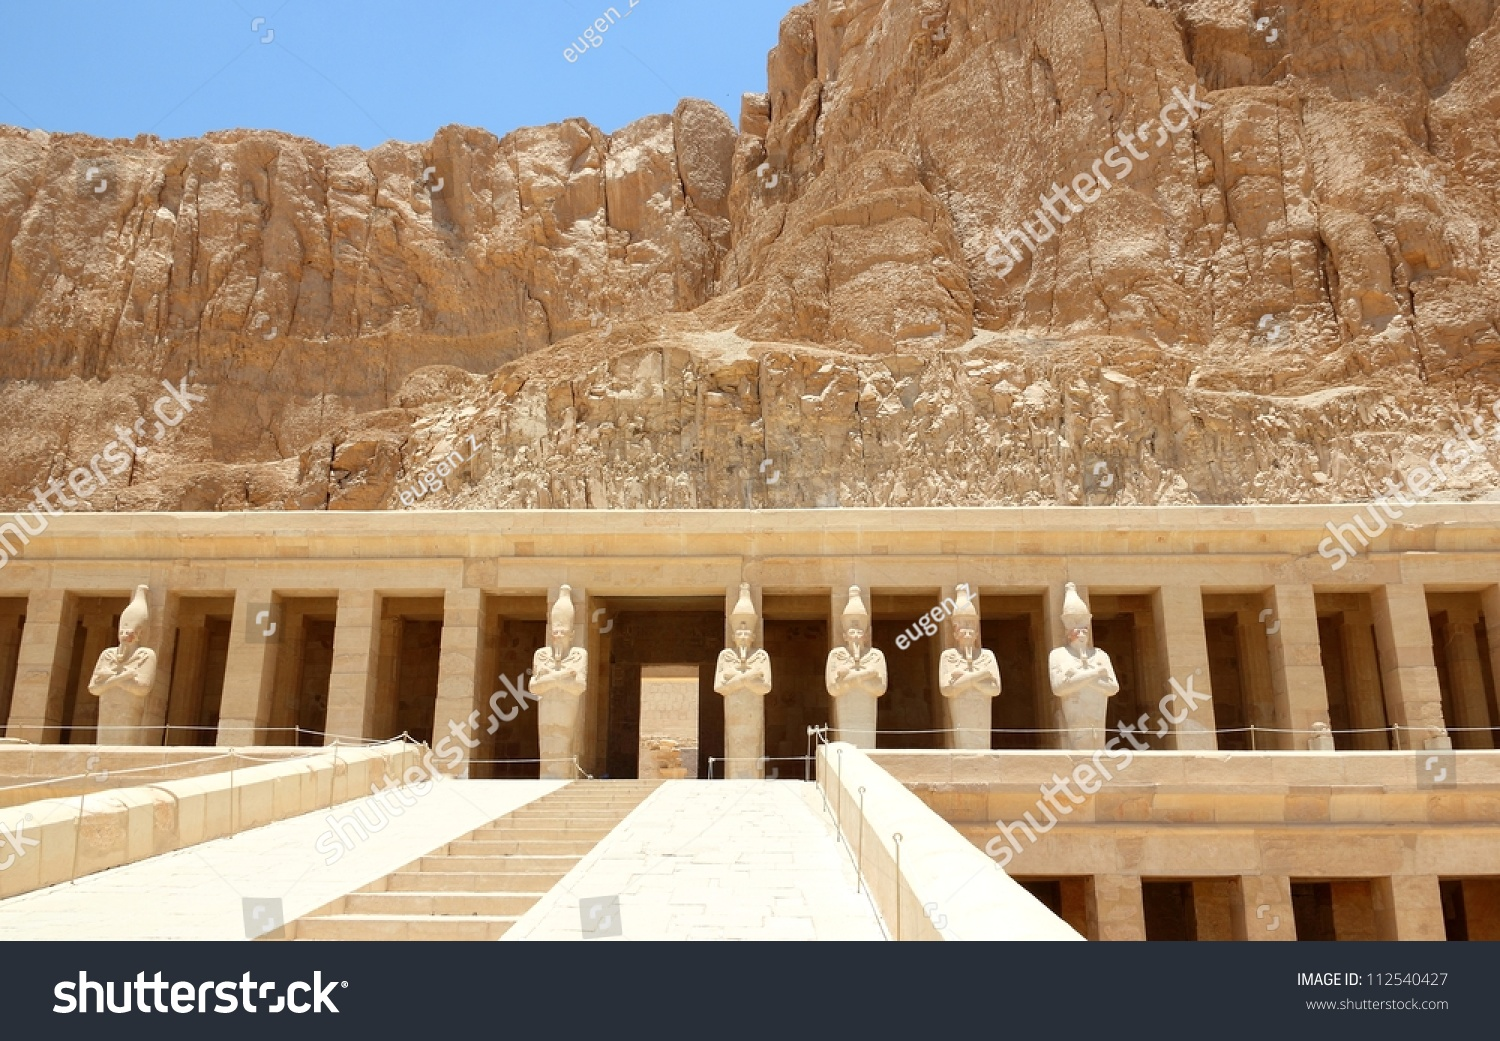 hatshepsut legacy None other than hatshepsut hatshepsut, the queen who became pharaoh despite hatshepsut's attempts to protect her legacy and her all.